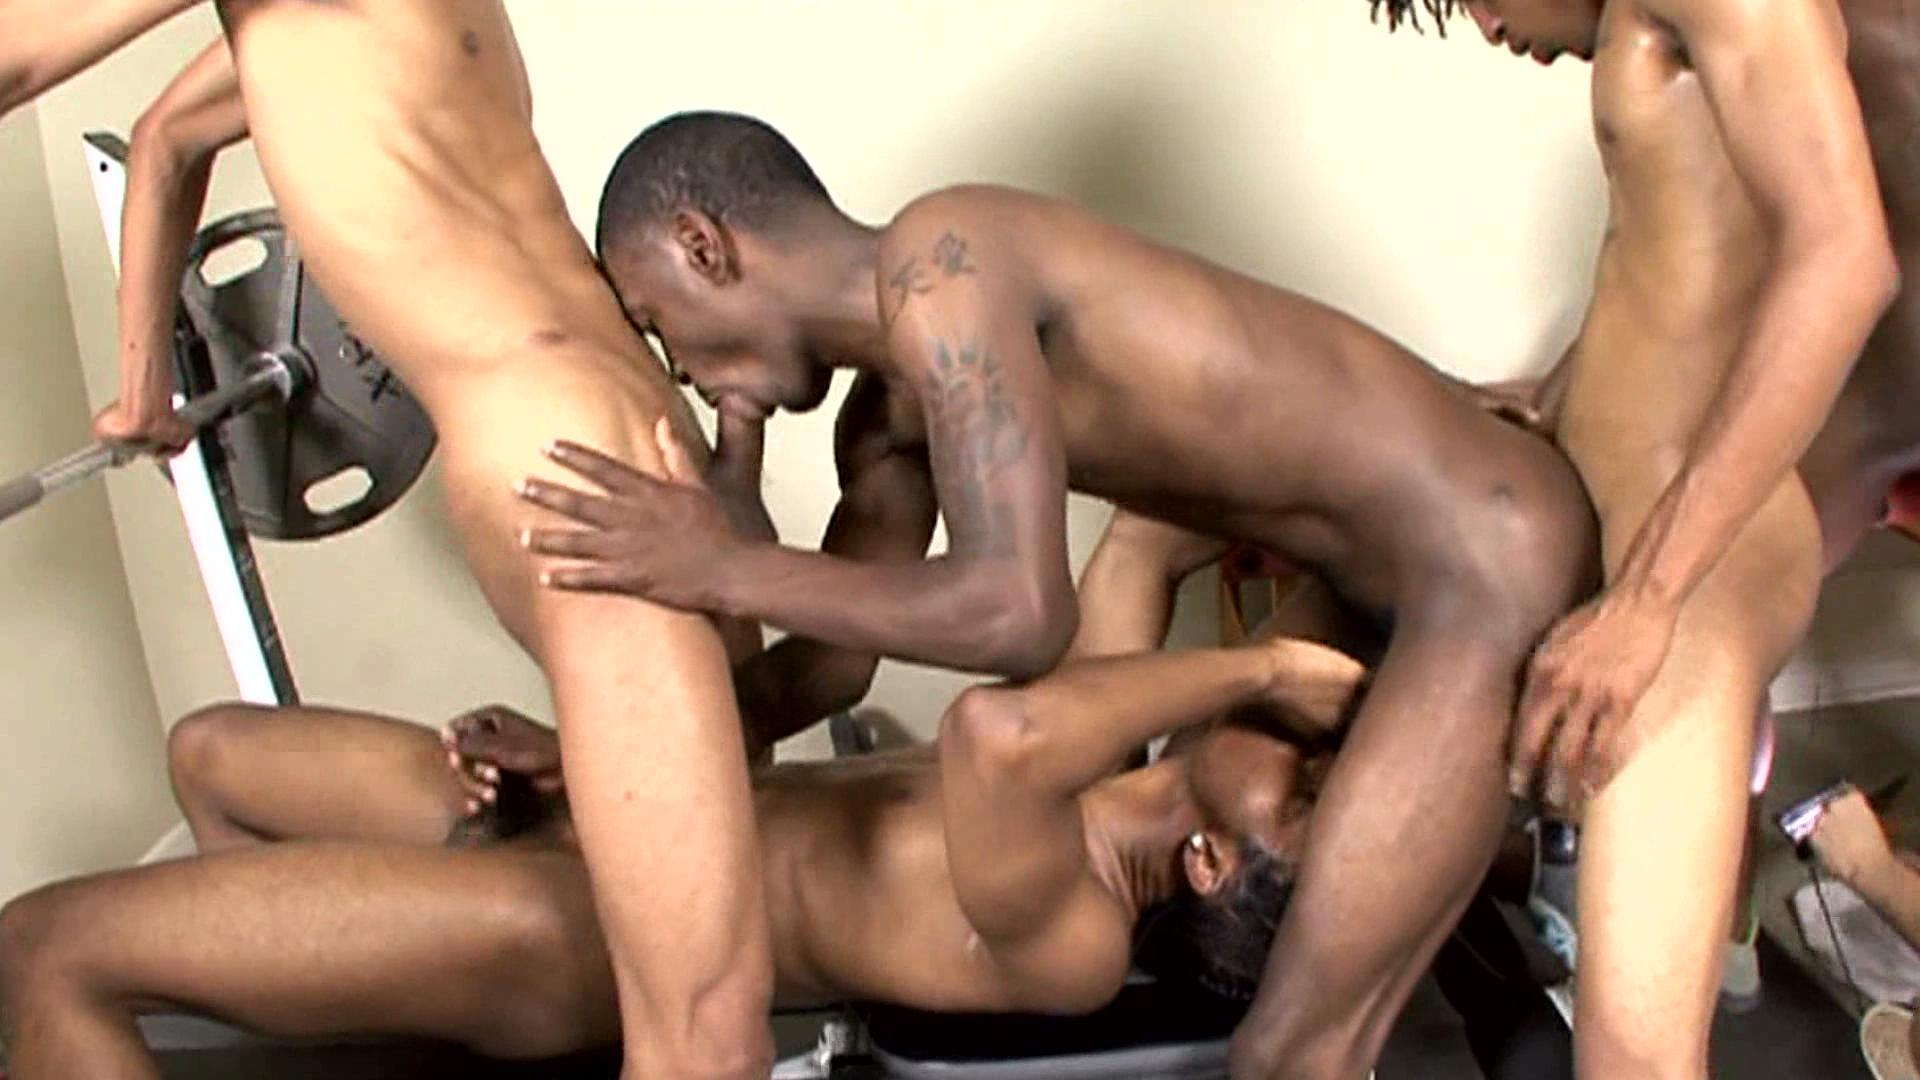 Hot gay boys at thug orgy